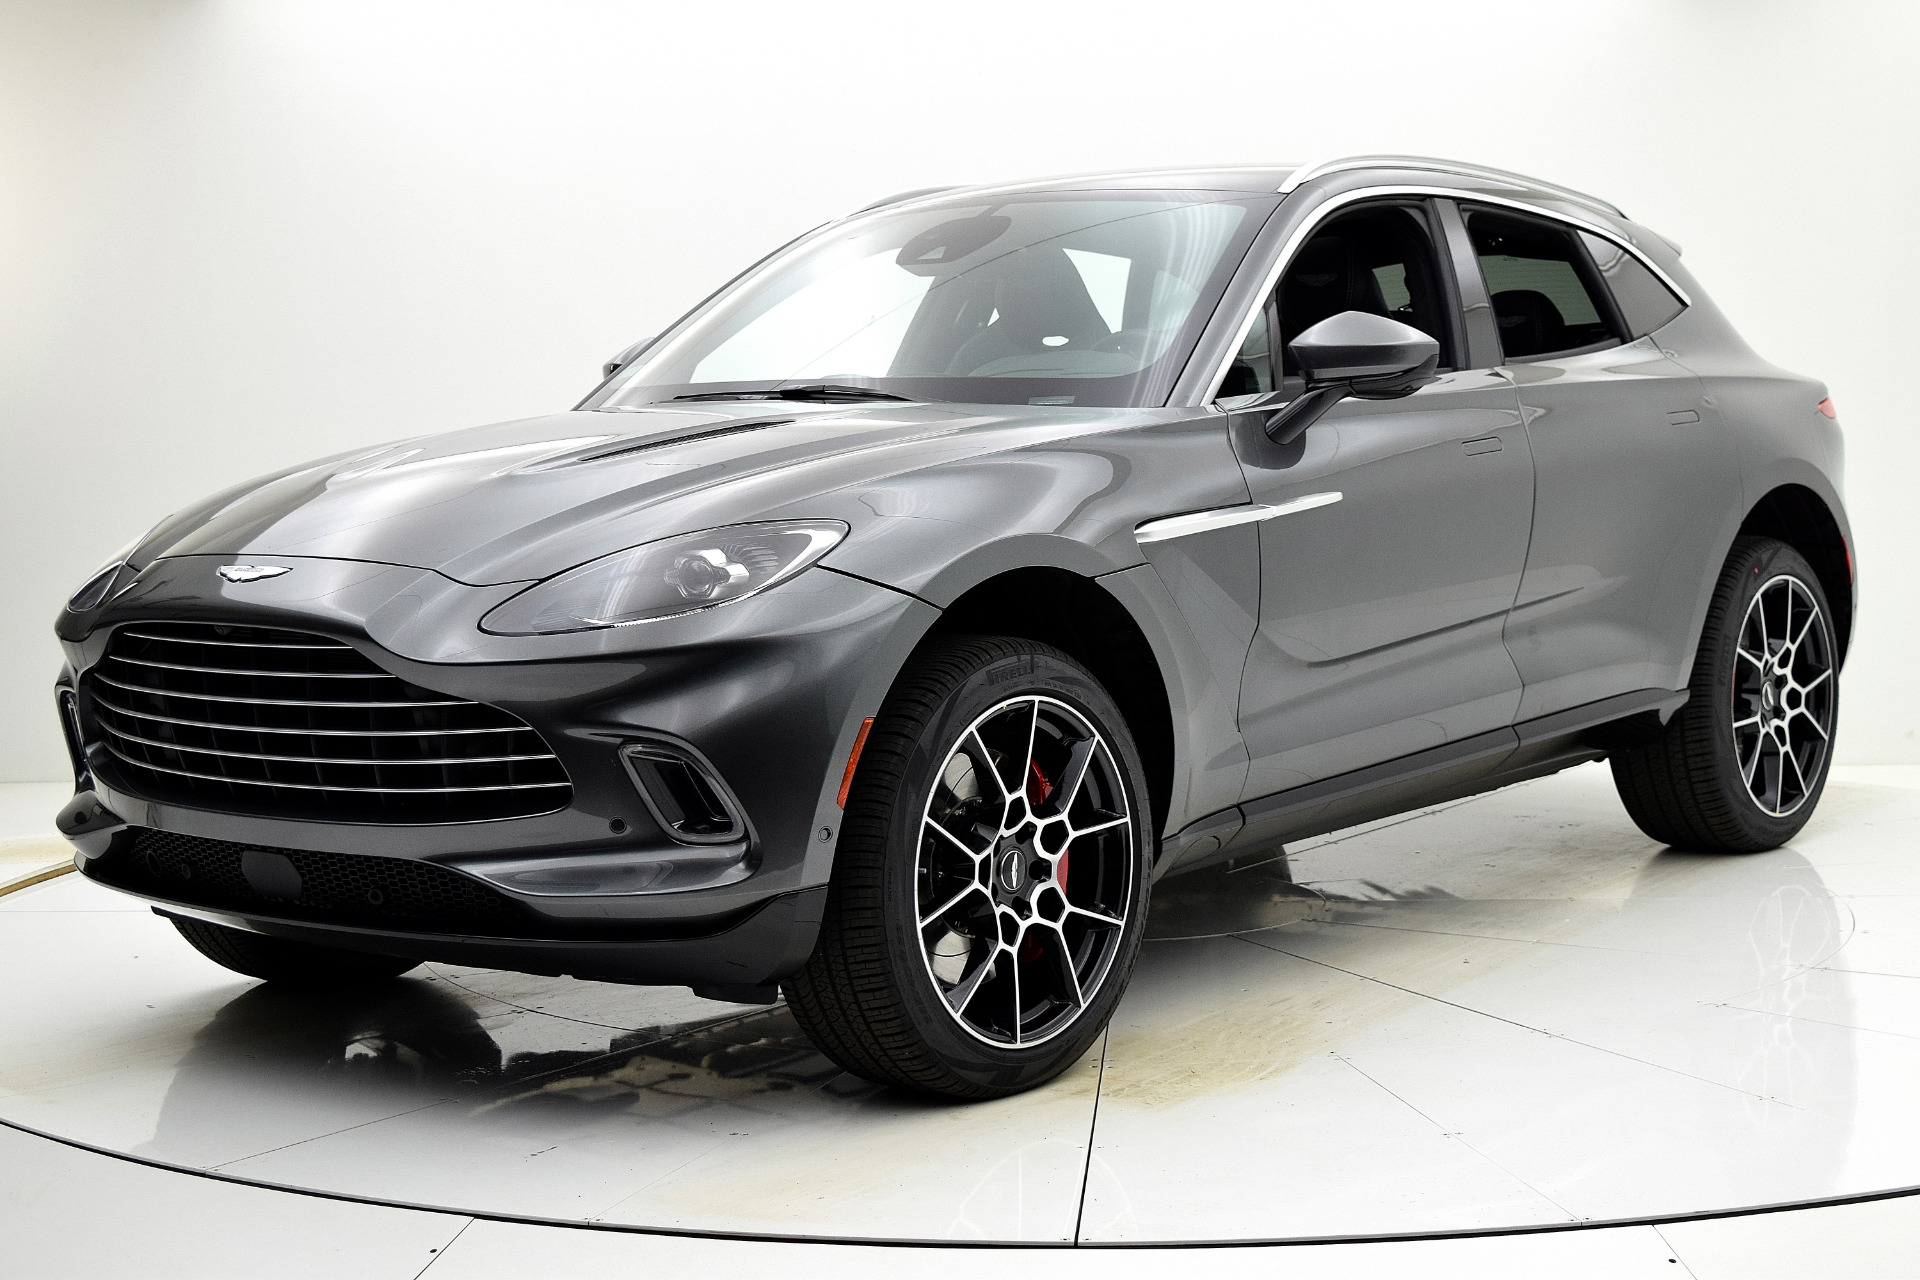 New 2021 Aston Martin DBX for sale Sold at Bentley Palmyra N.J. in Palmyra NJ 08065 2